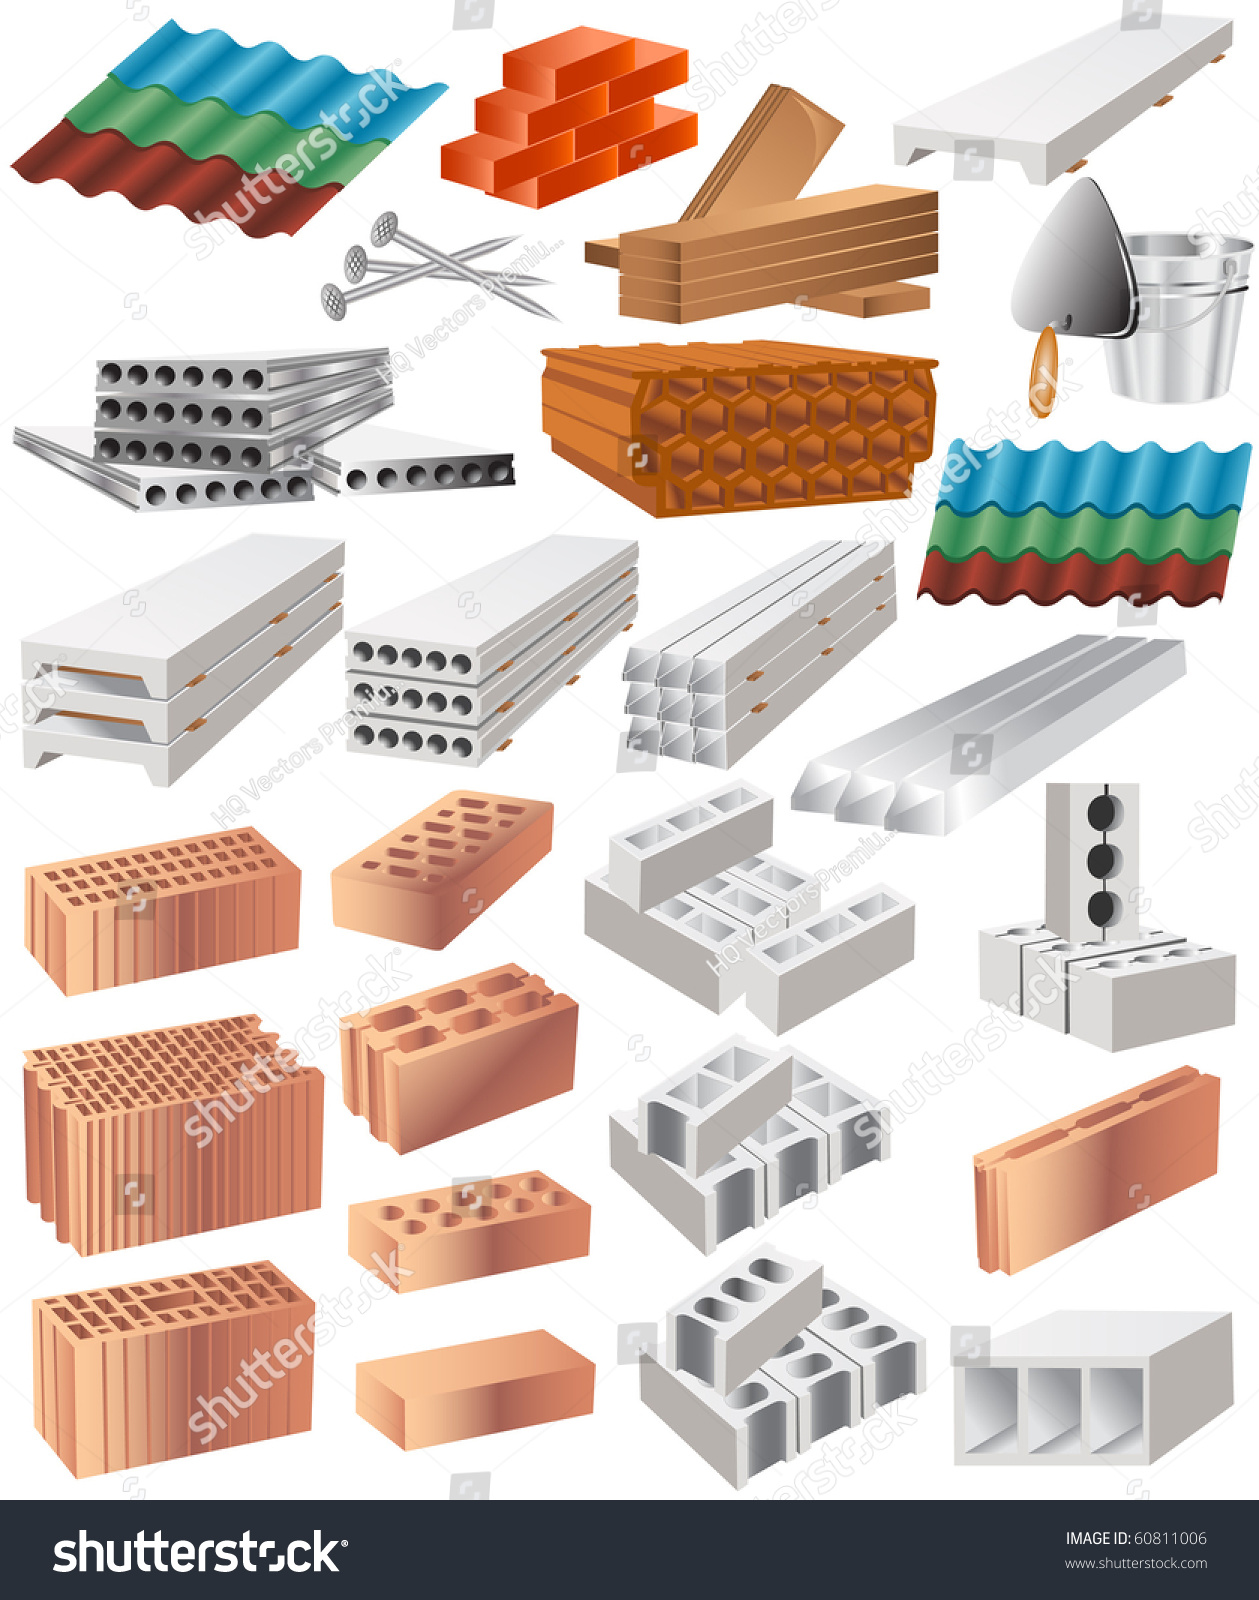 Building material stock vector illustration 60811006 for I 10 building materials